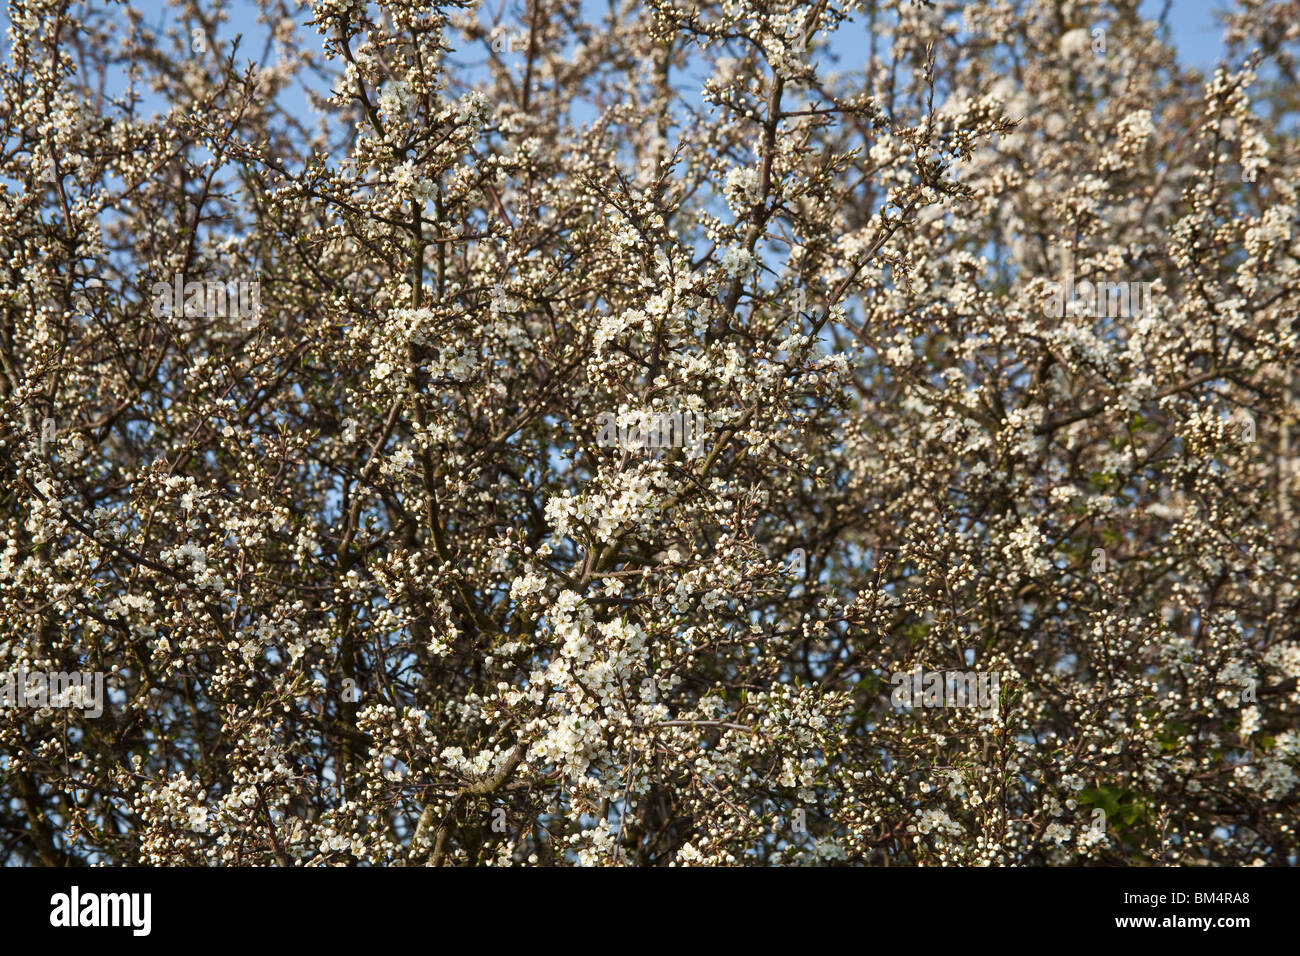 Hawthorn tree in blossom , Hampshire, England. - Stock Image